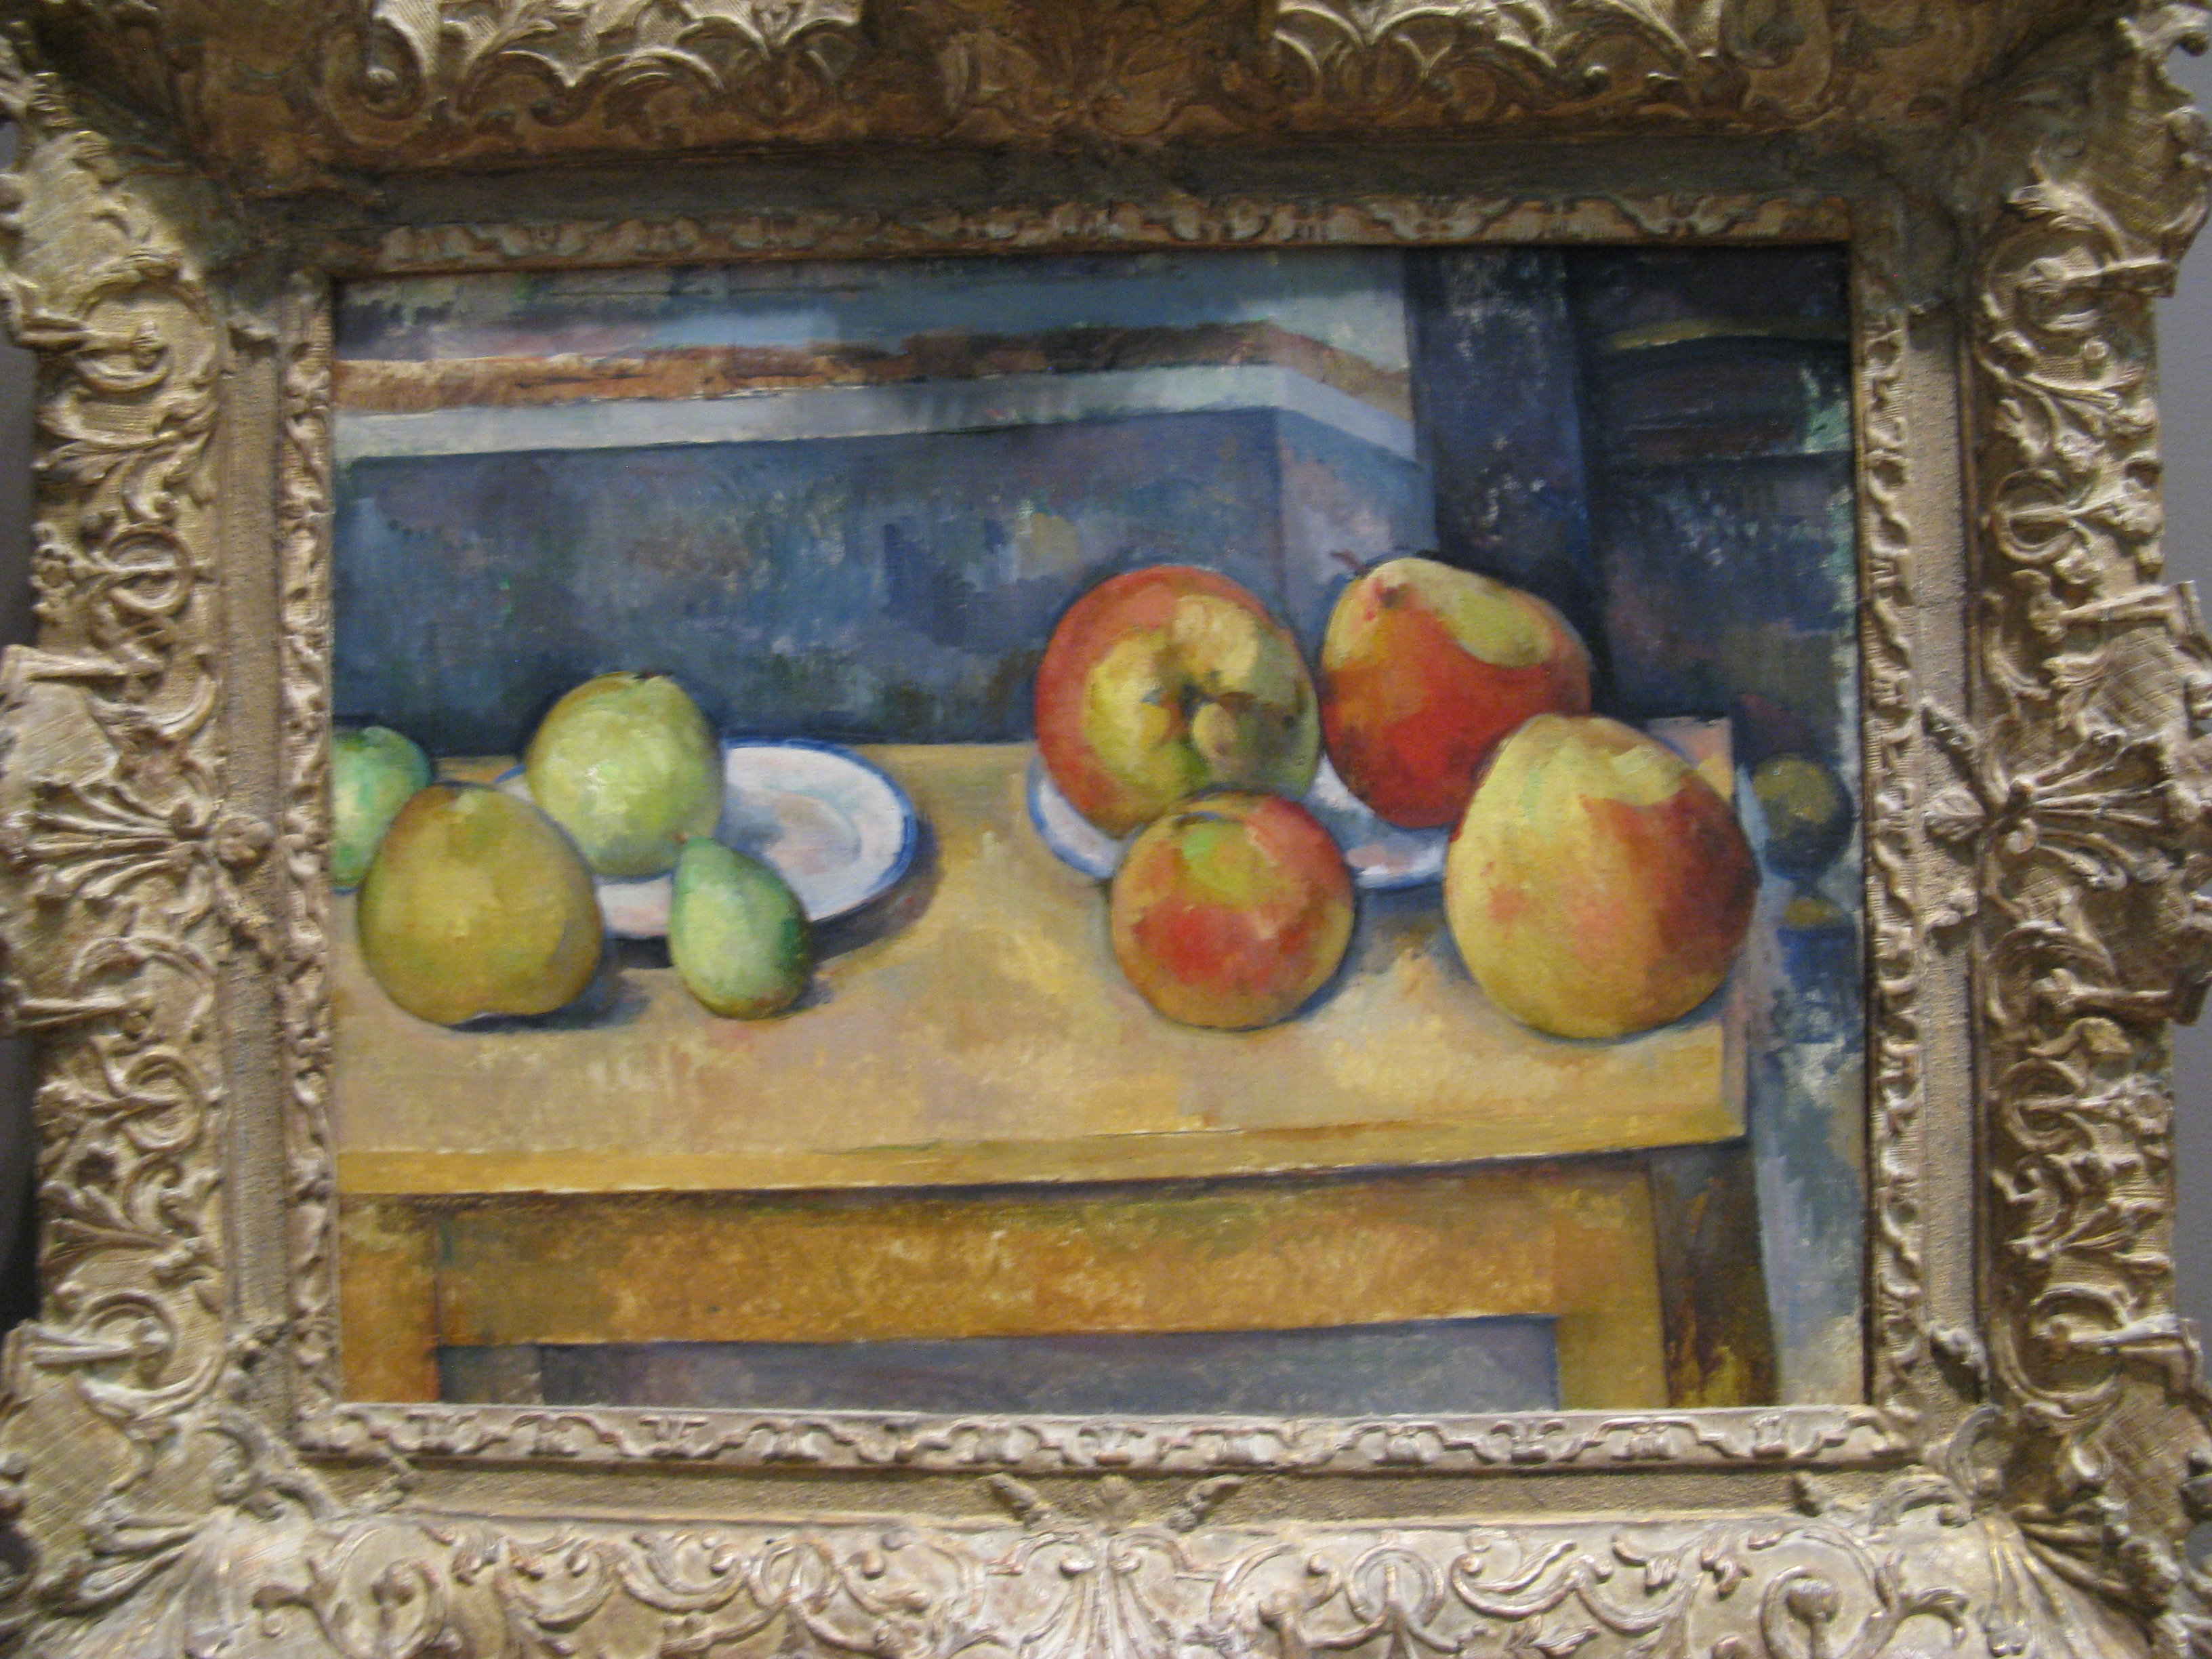 An introduction to the painting of Paul Cézanne